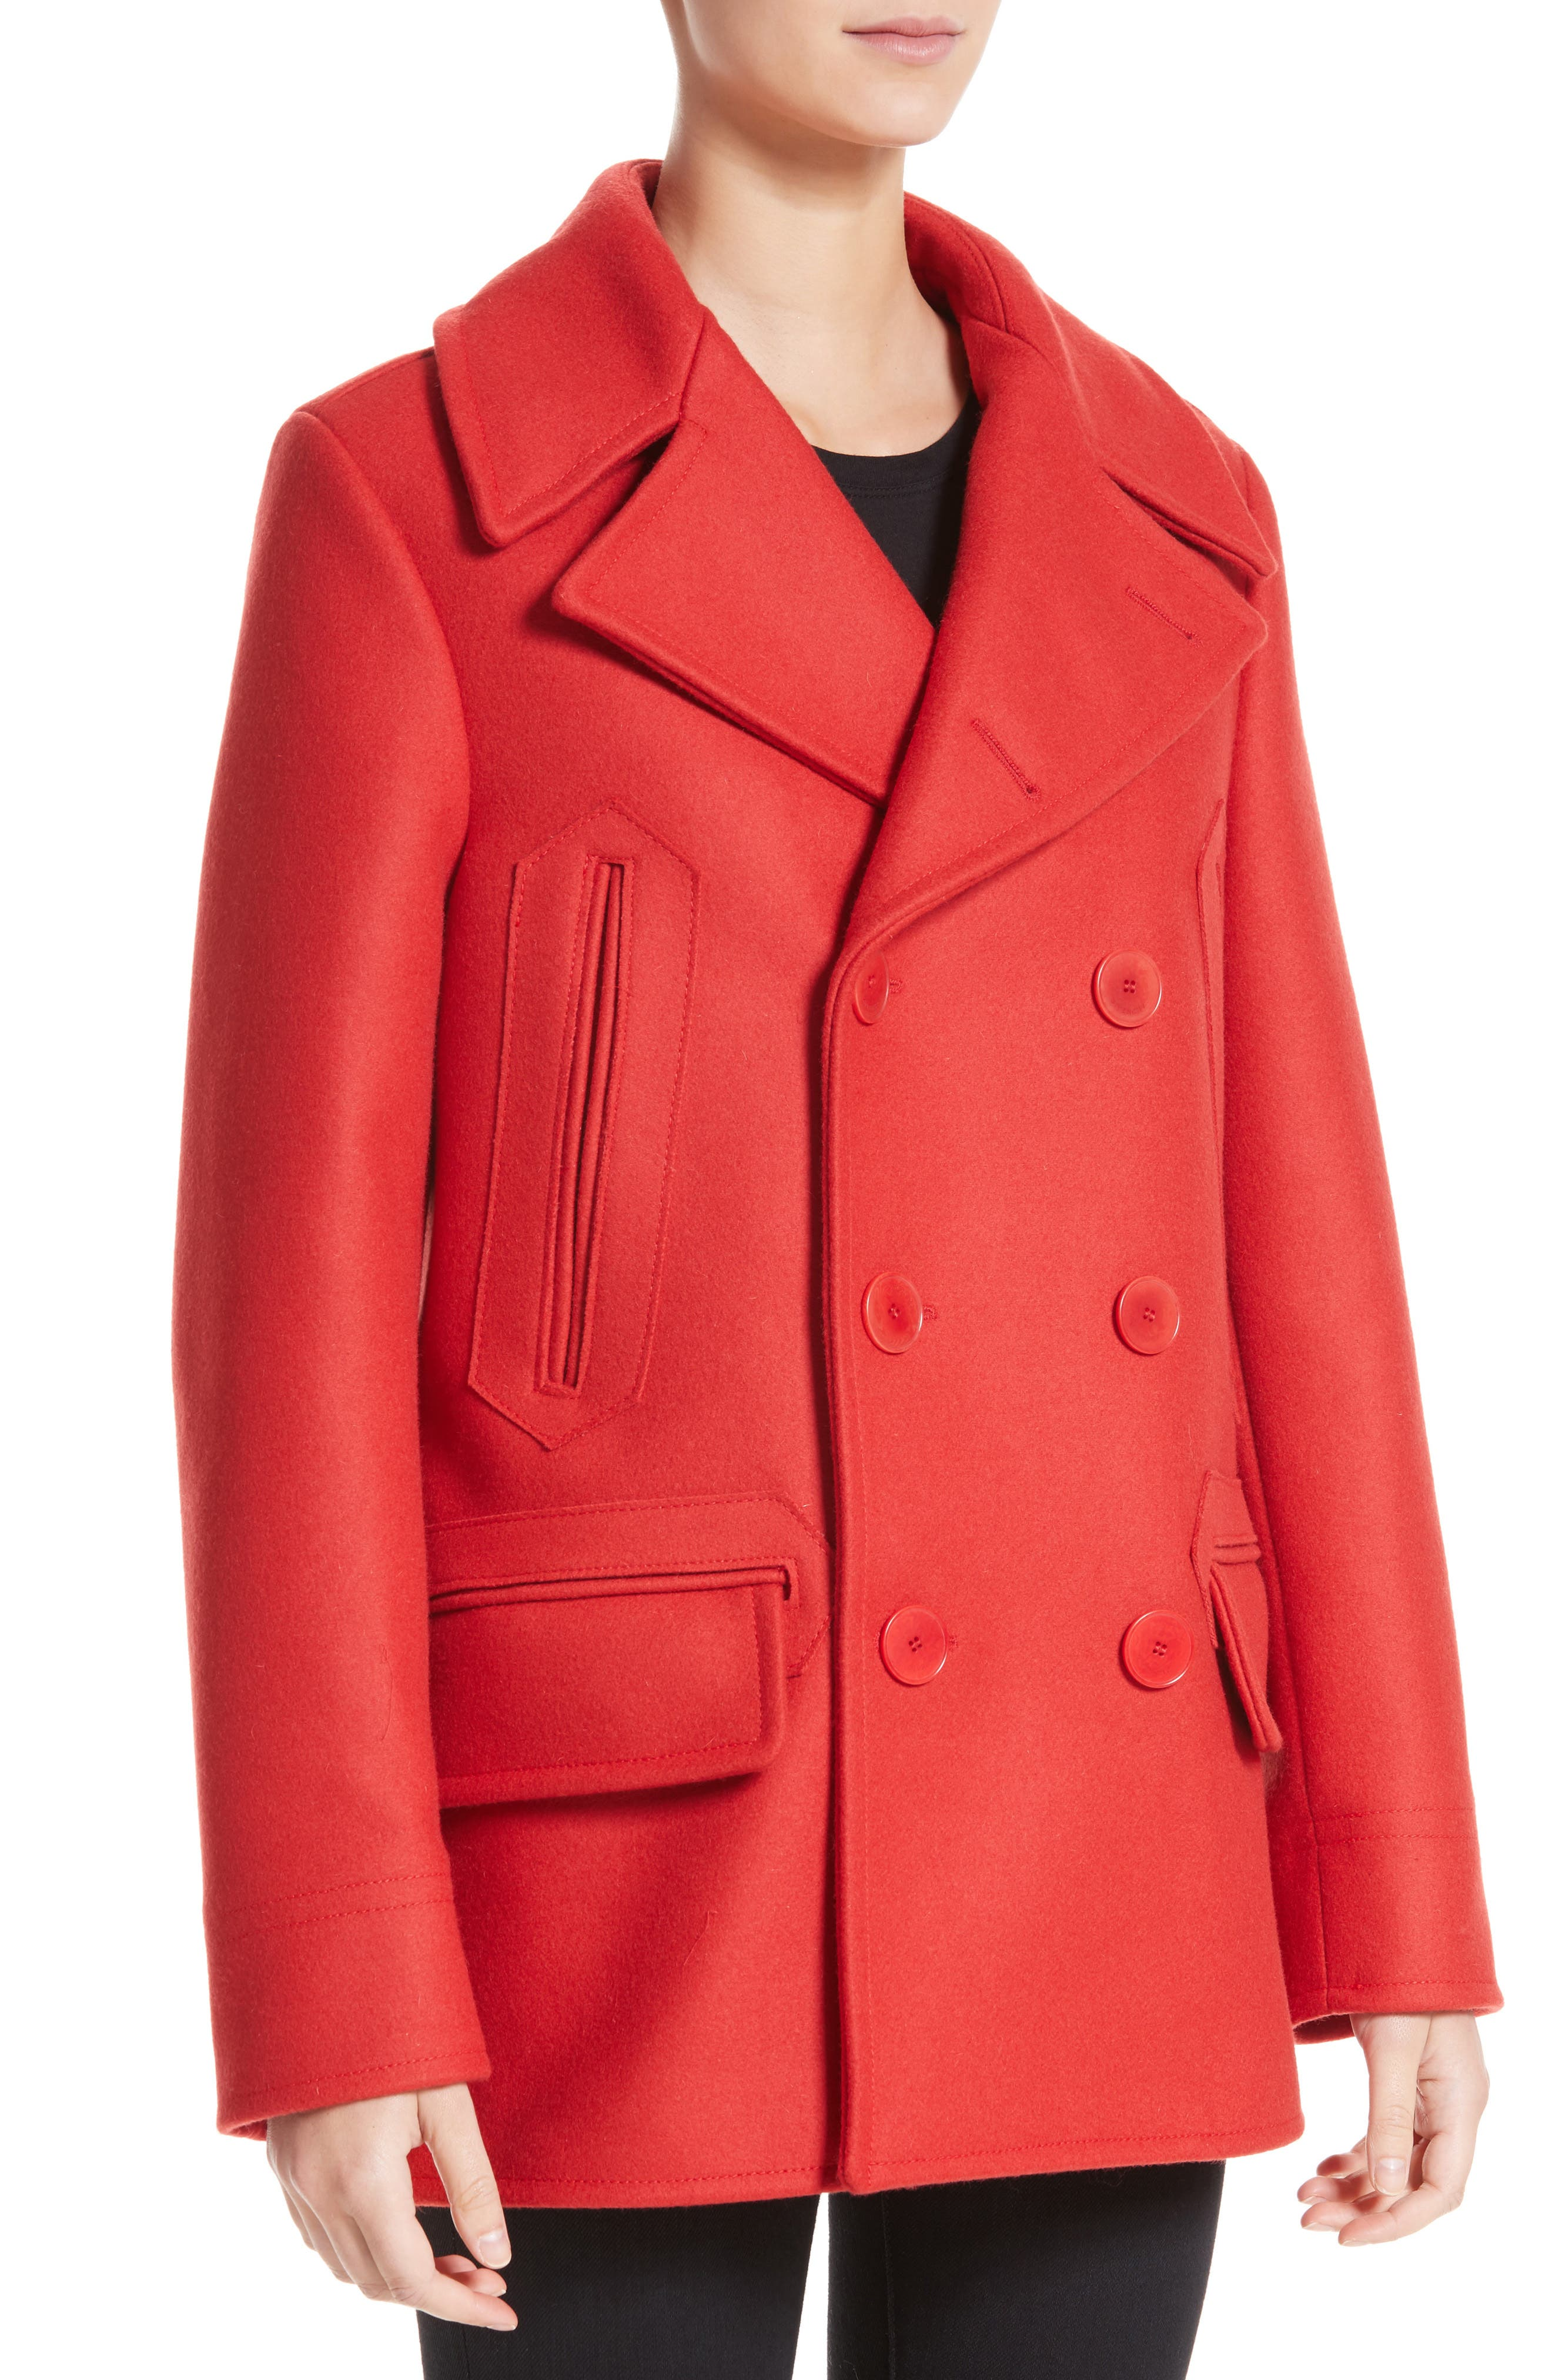 Alternate Image 2  - Givenchy Knit Collar Peacoat